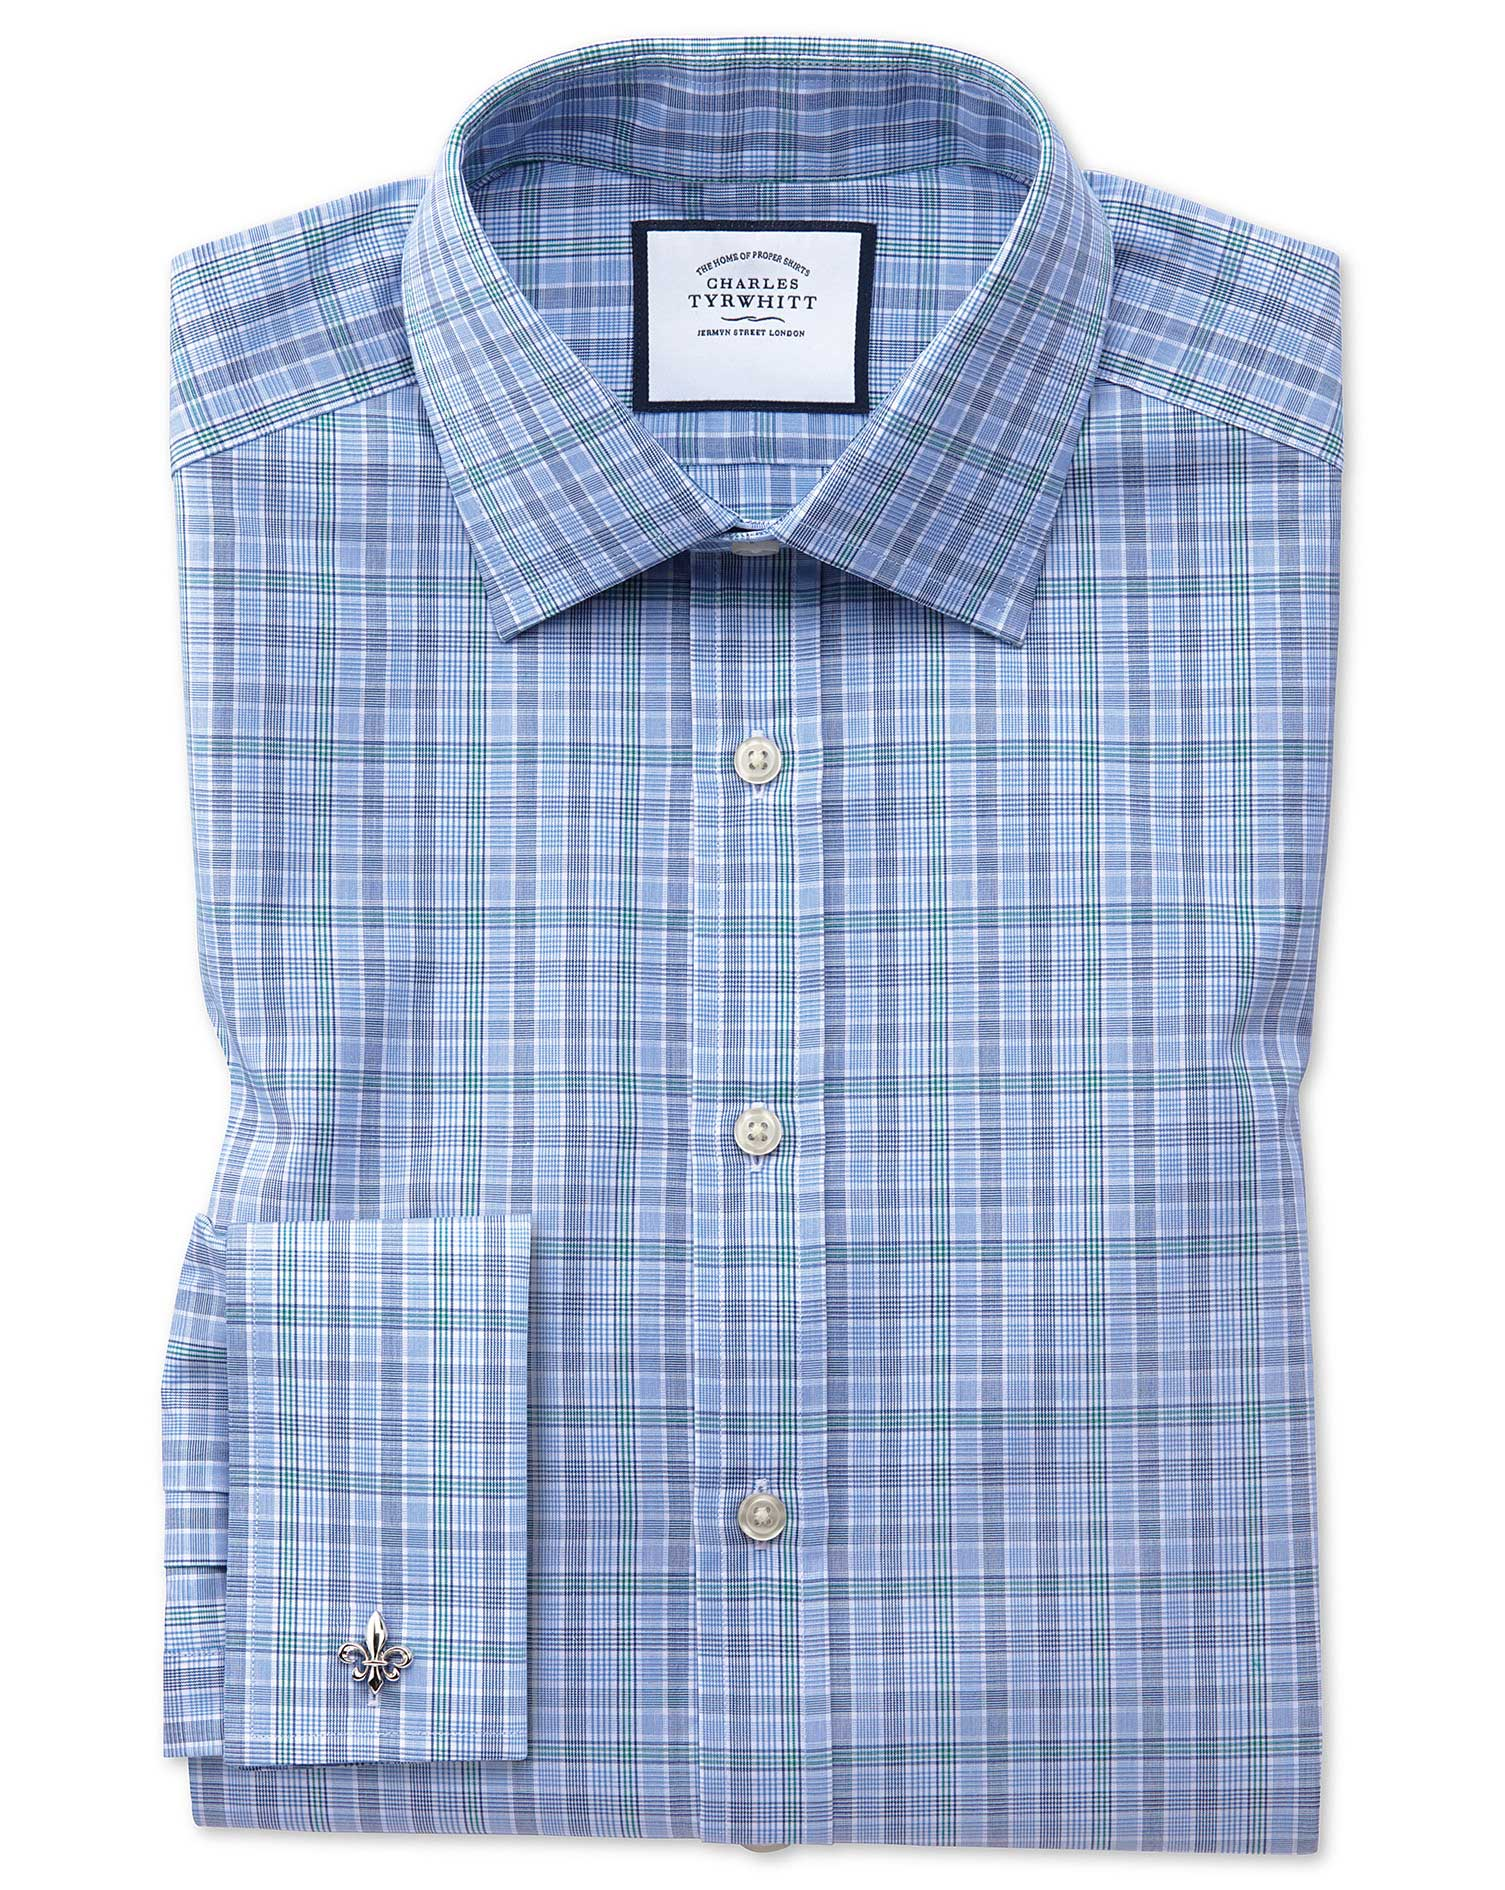 Slim Fit Blue and Green Prince Of Wales Check Cotton Formal Shirt Single Cuff Size 15.5/32 by Charle